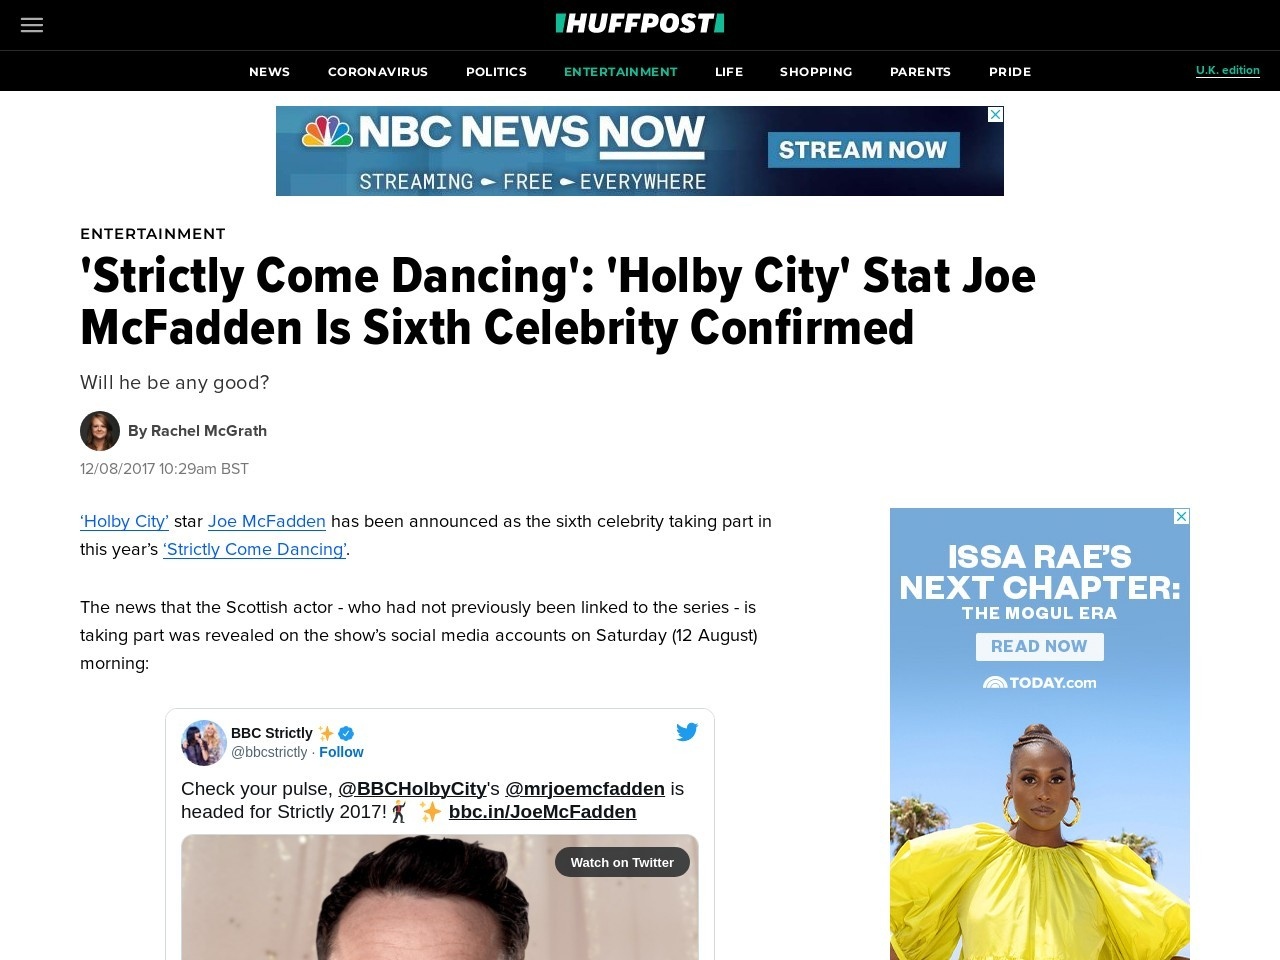 'Strictly Come Dancing': 'Holby City' Stat Joe McFadden Is Sixth Celebrity Confirmed